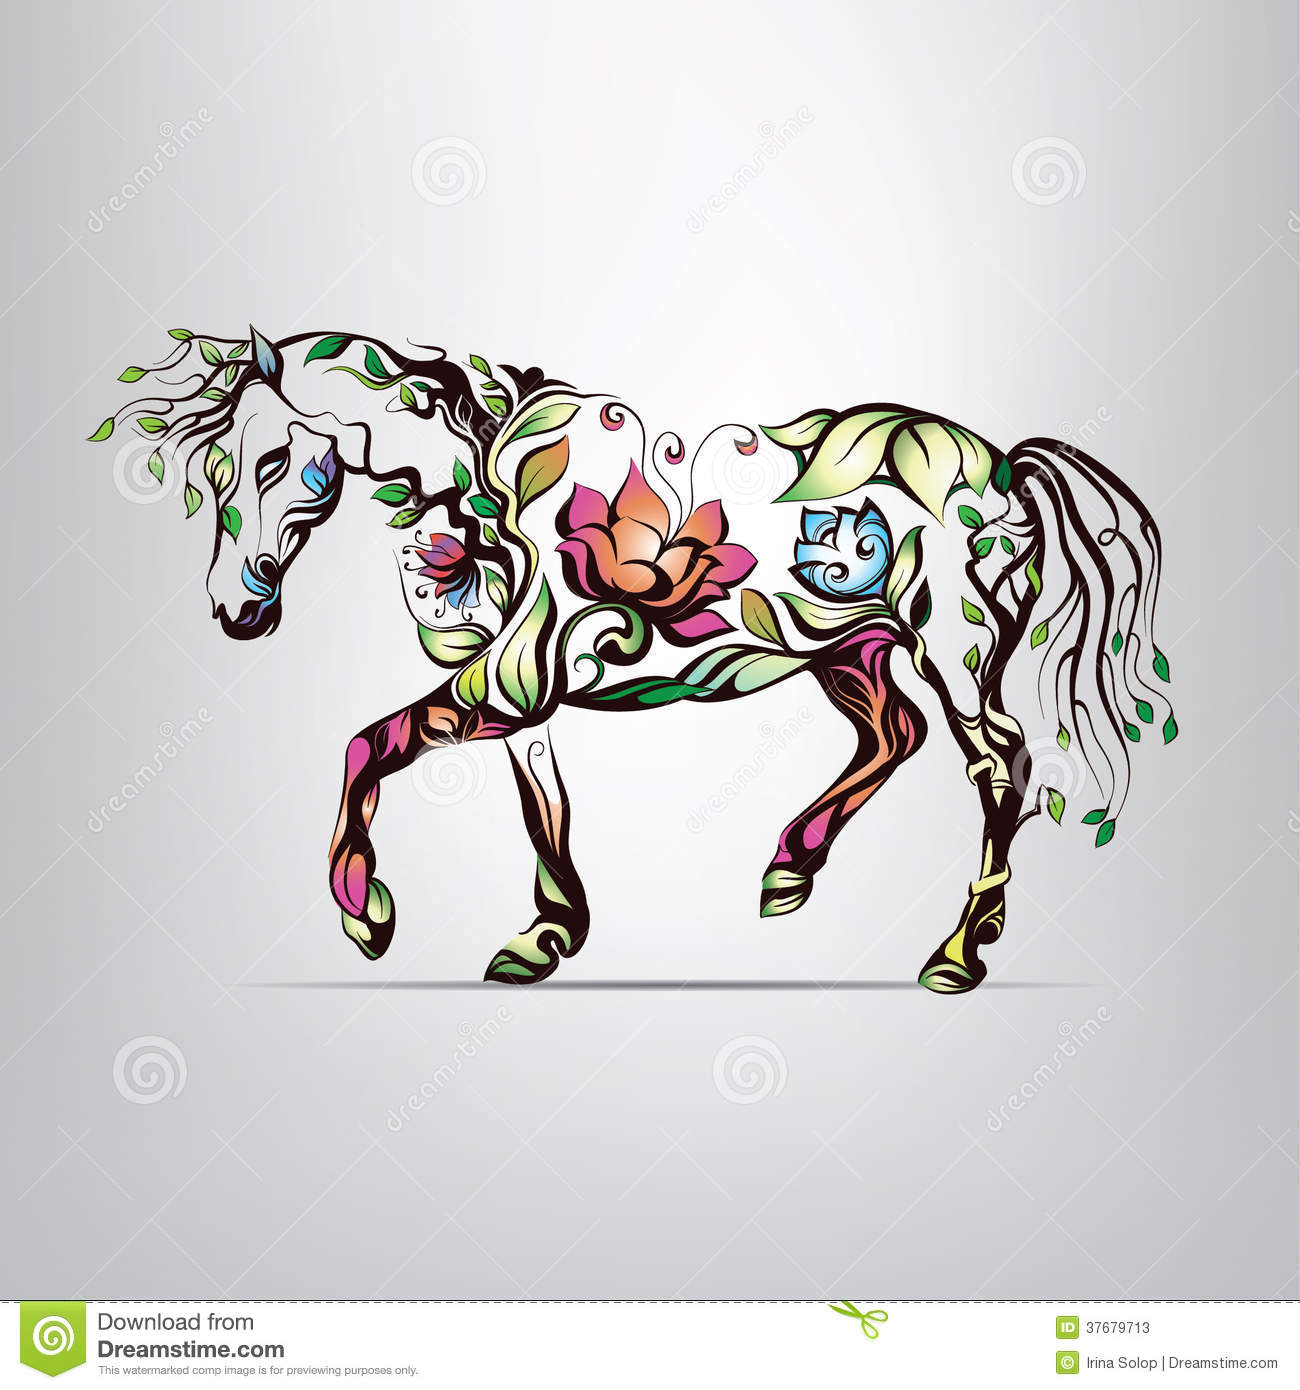 Blossom Wall Stickers Horse Silhouette Of Floral Ornament Stock Photos Image